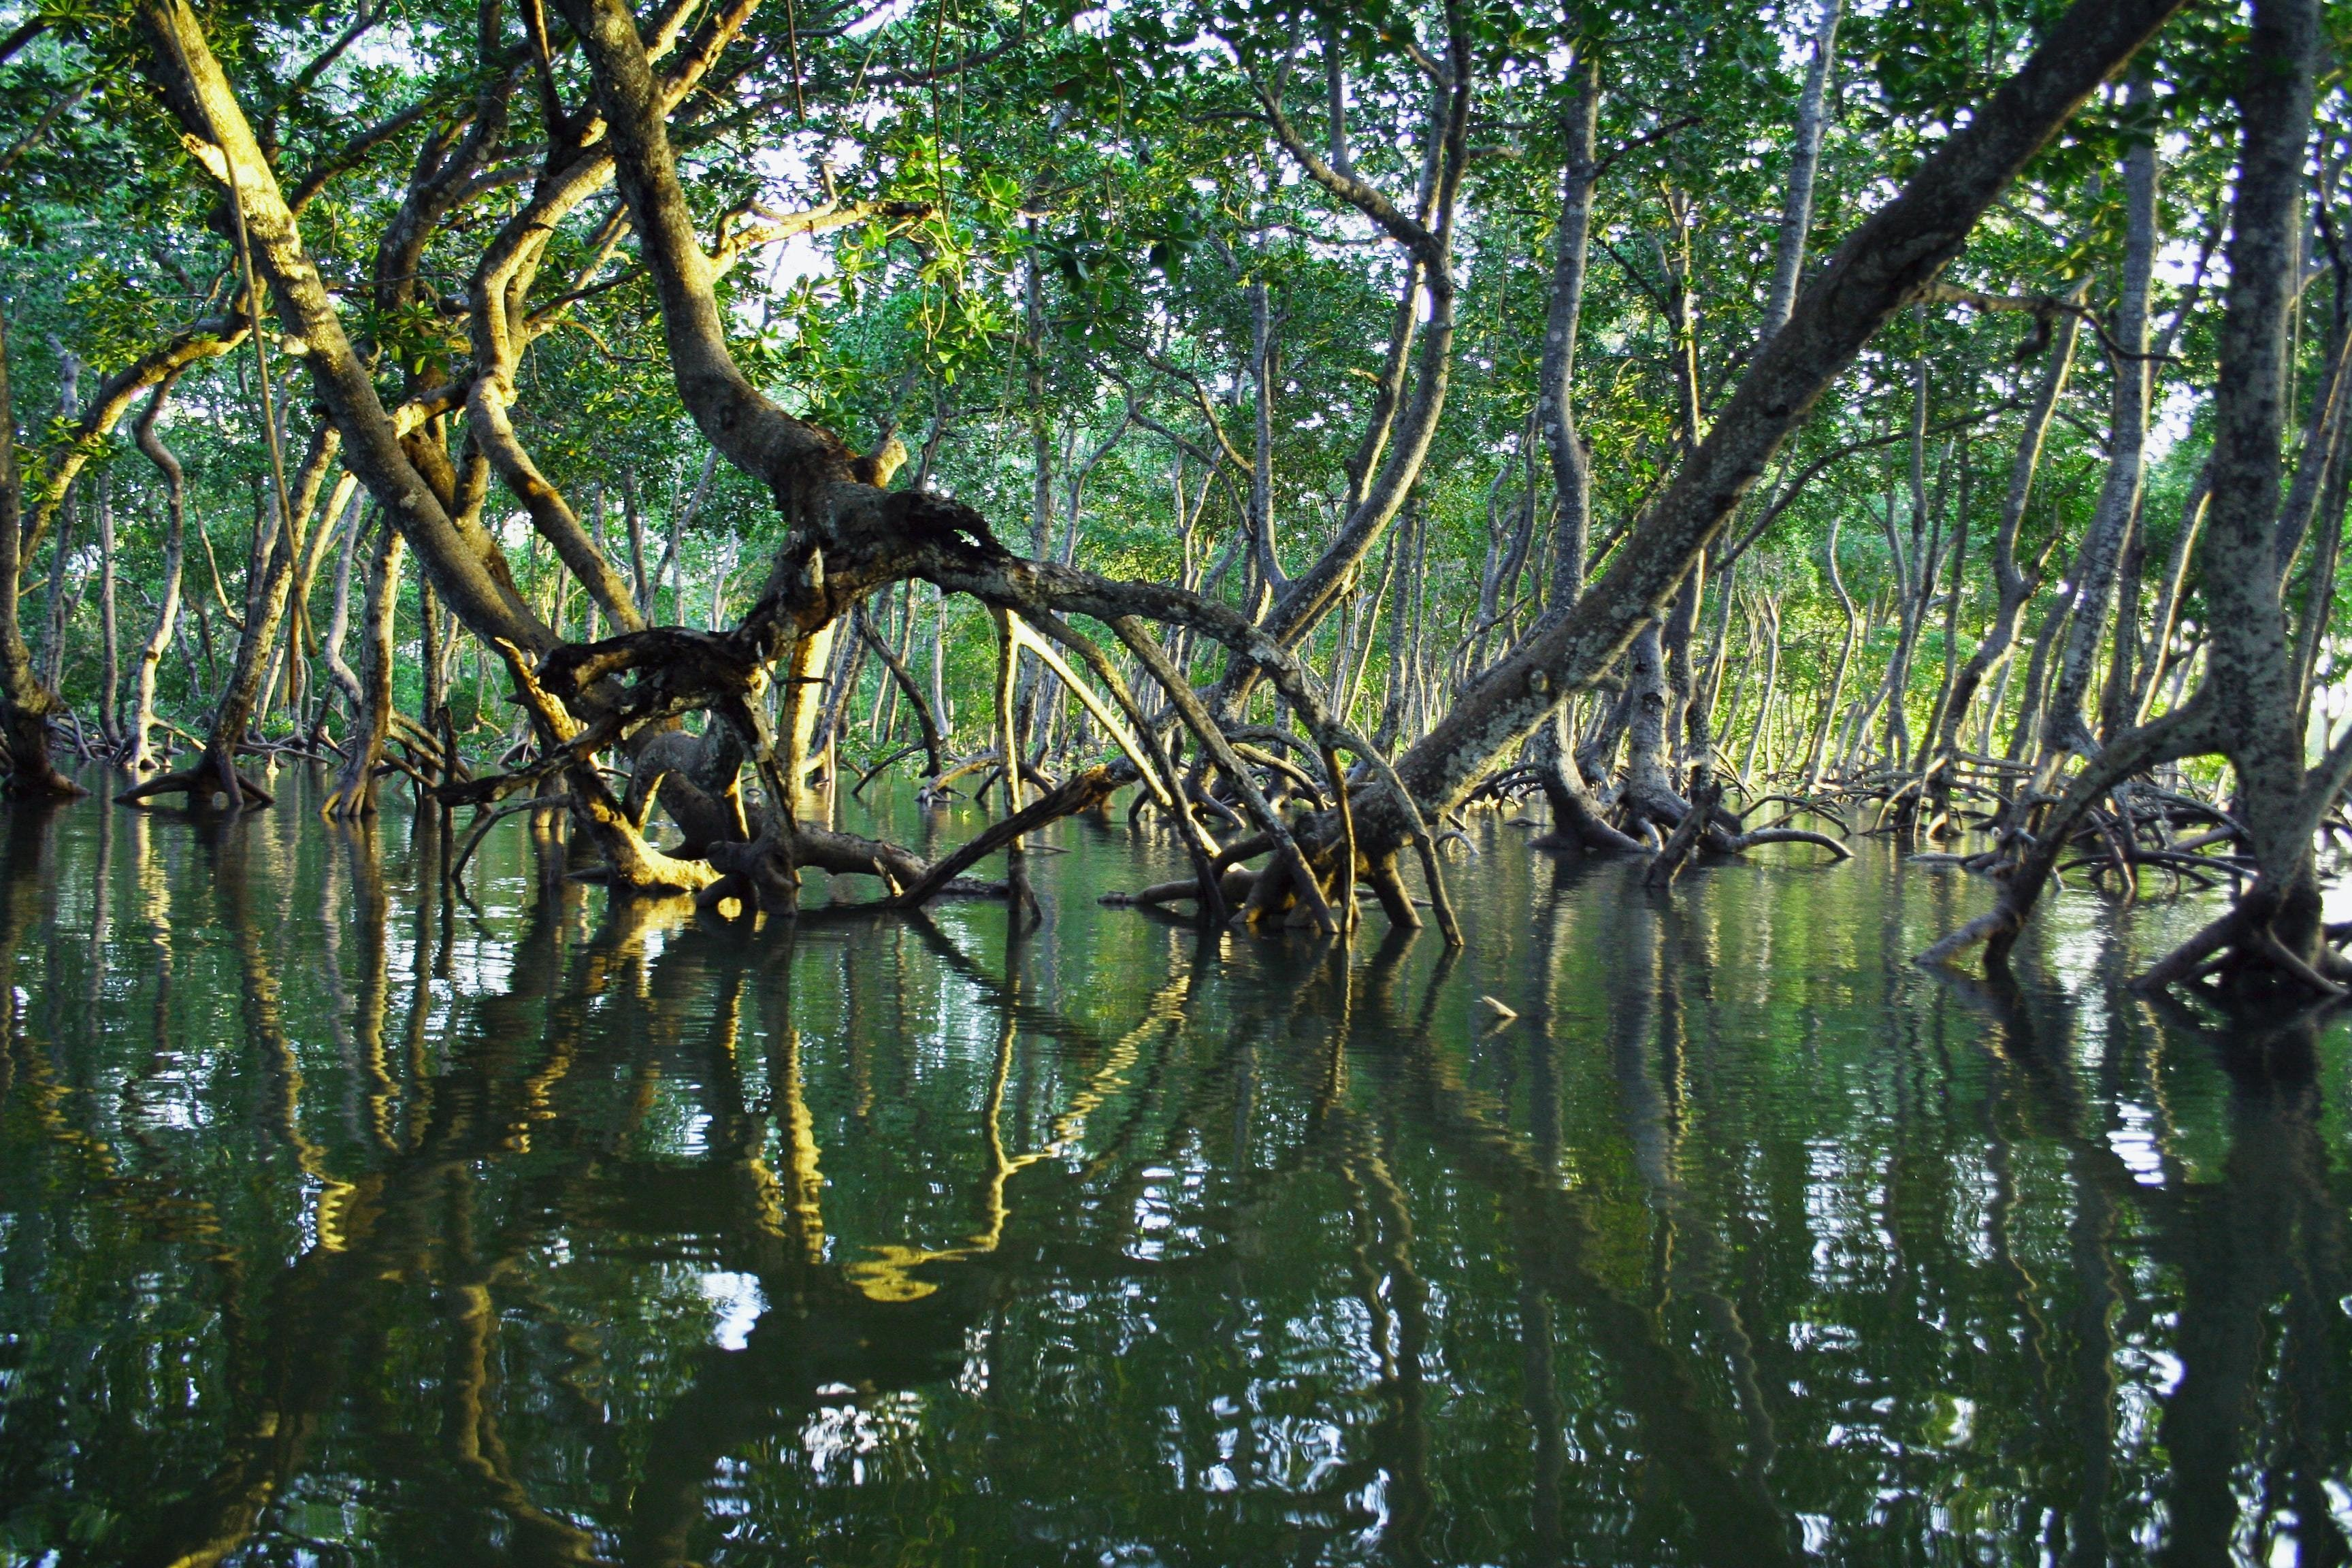 these are mangrove trees, which have the potential to retain NO2 from the ocean and help the environment